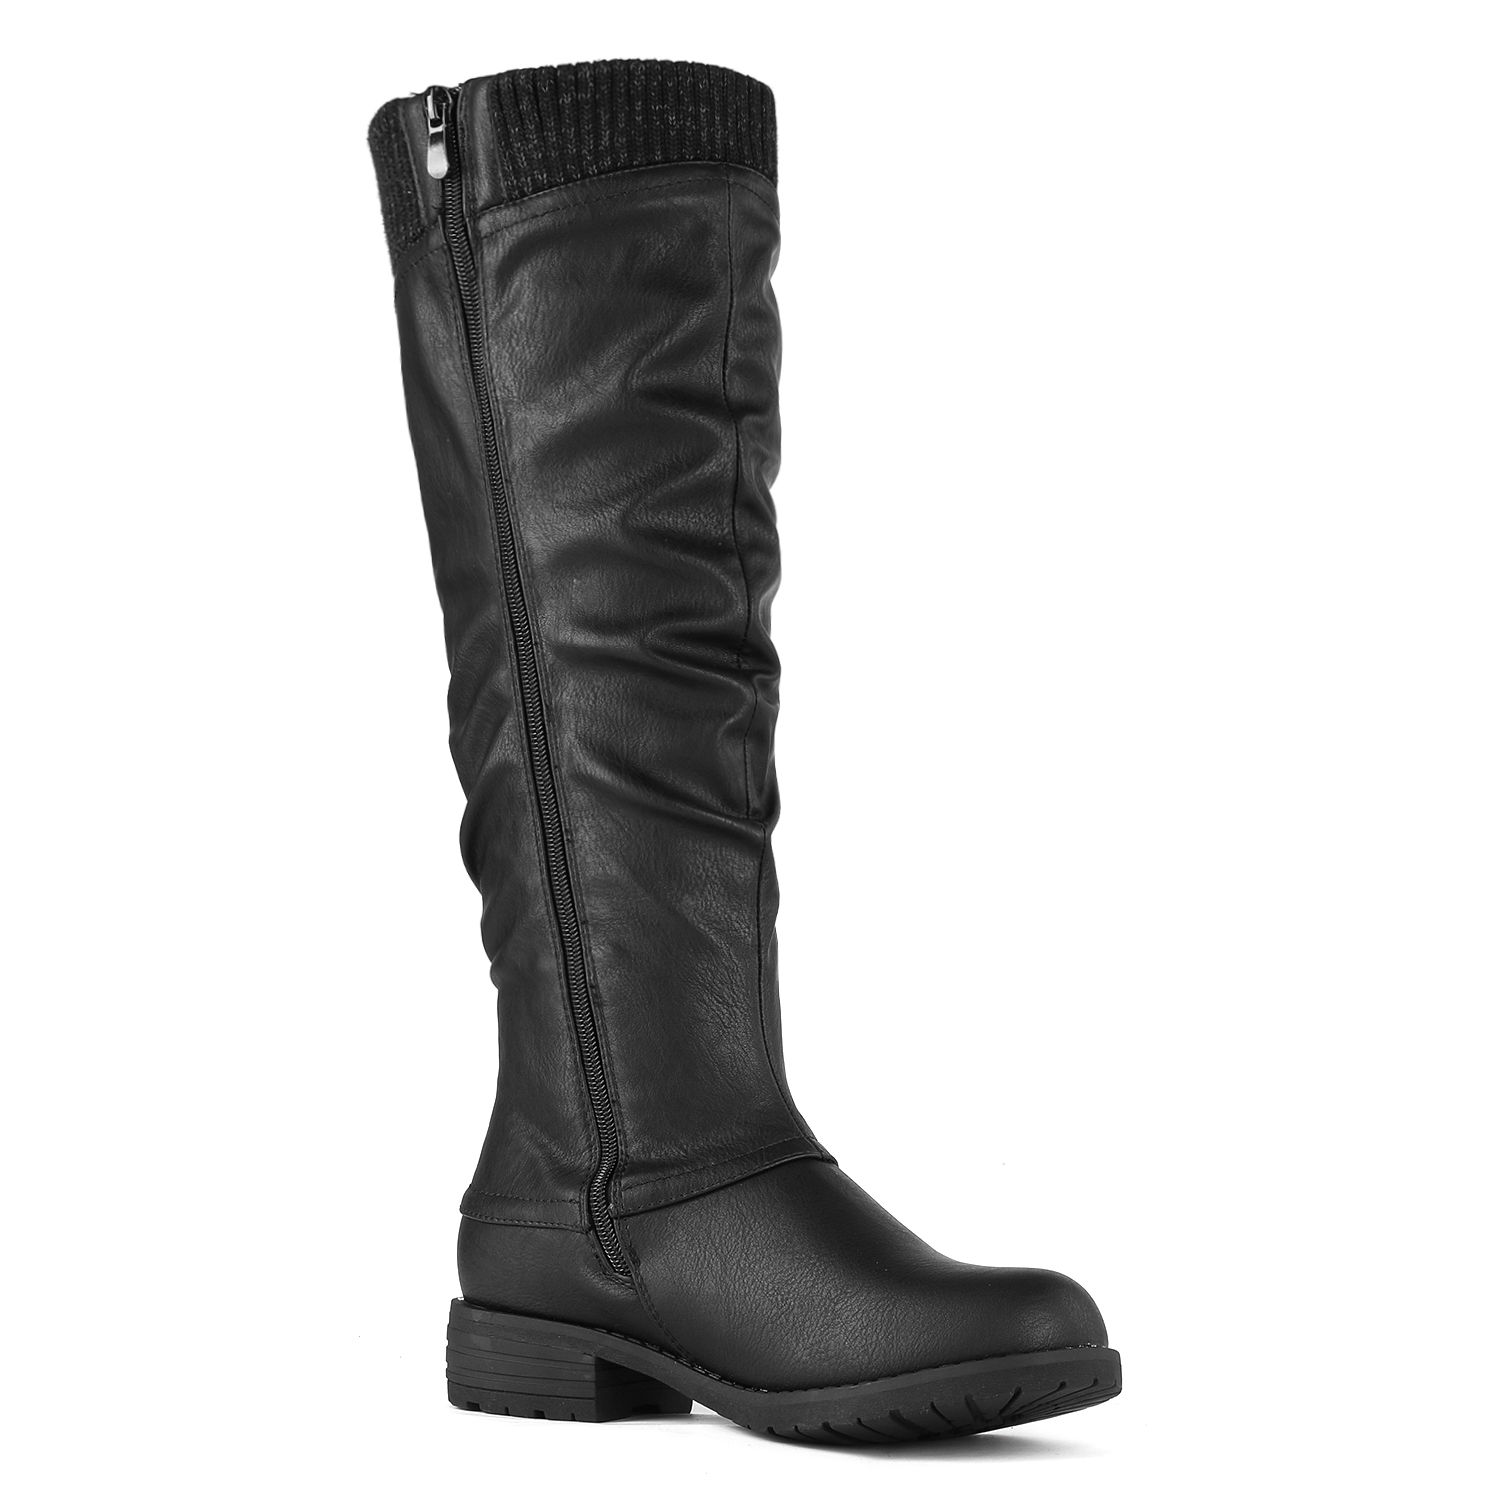 DREAM-PAIRS-Womens-DEPP-Cowgirl-Soft-PU-Leather-Combat-Knee-High-Riding-Boots thumbnail 8